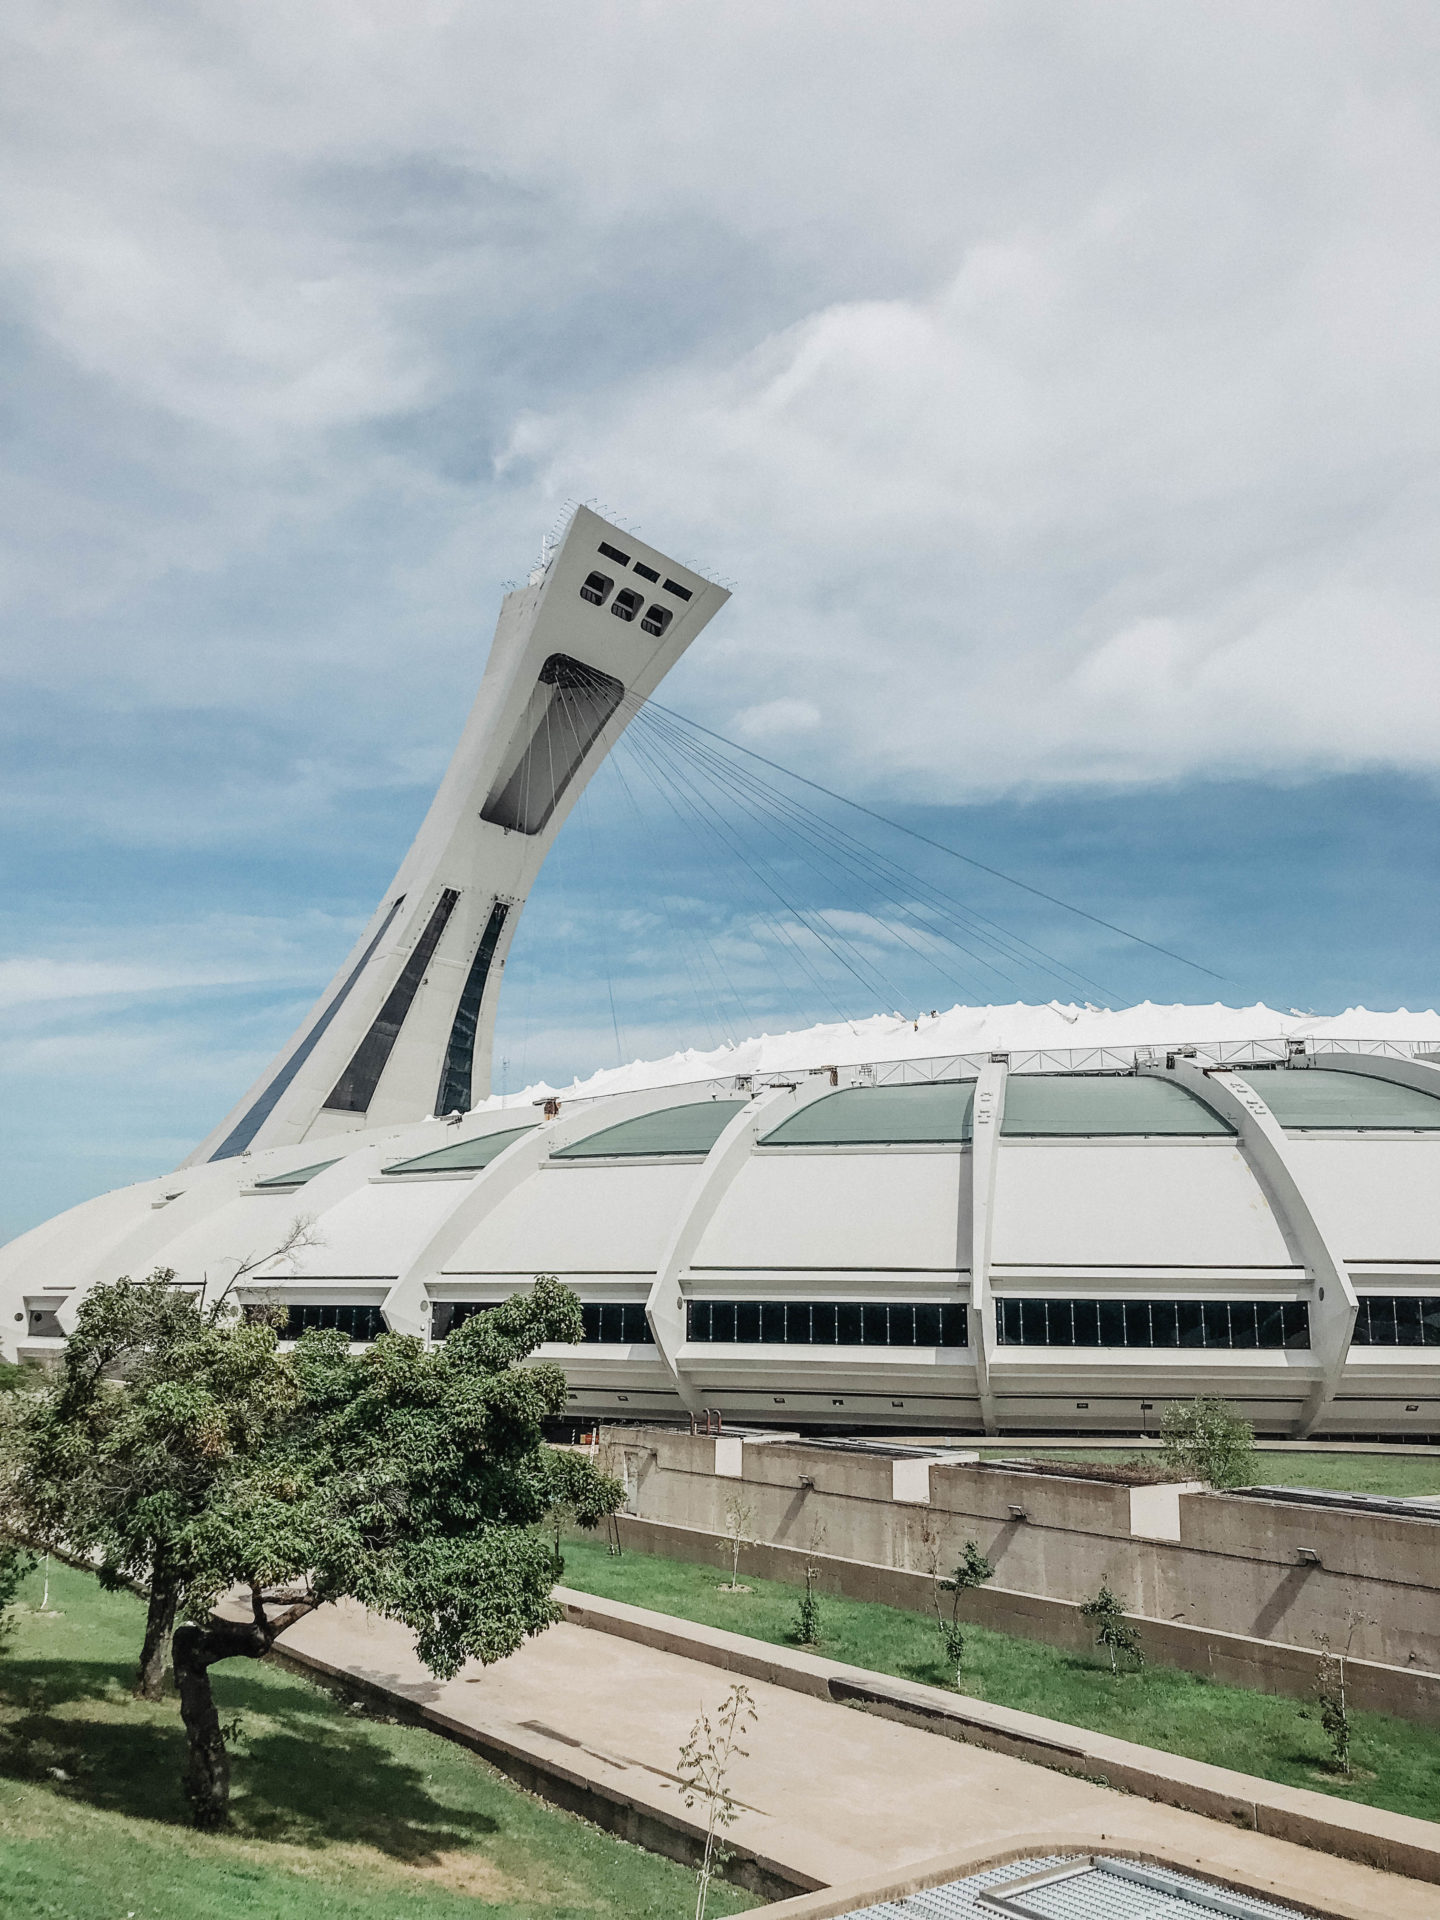 Stade Olympique Montréal marie and mood blog